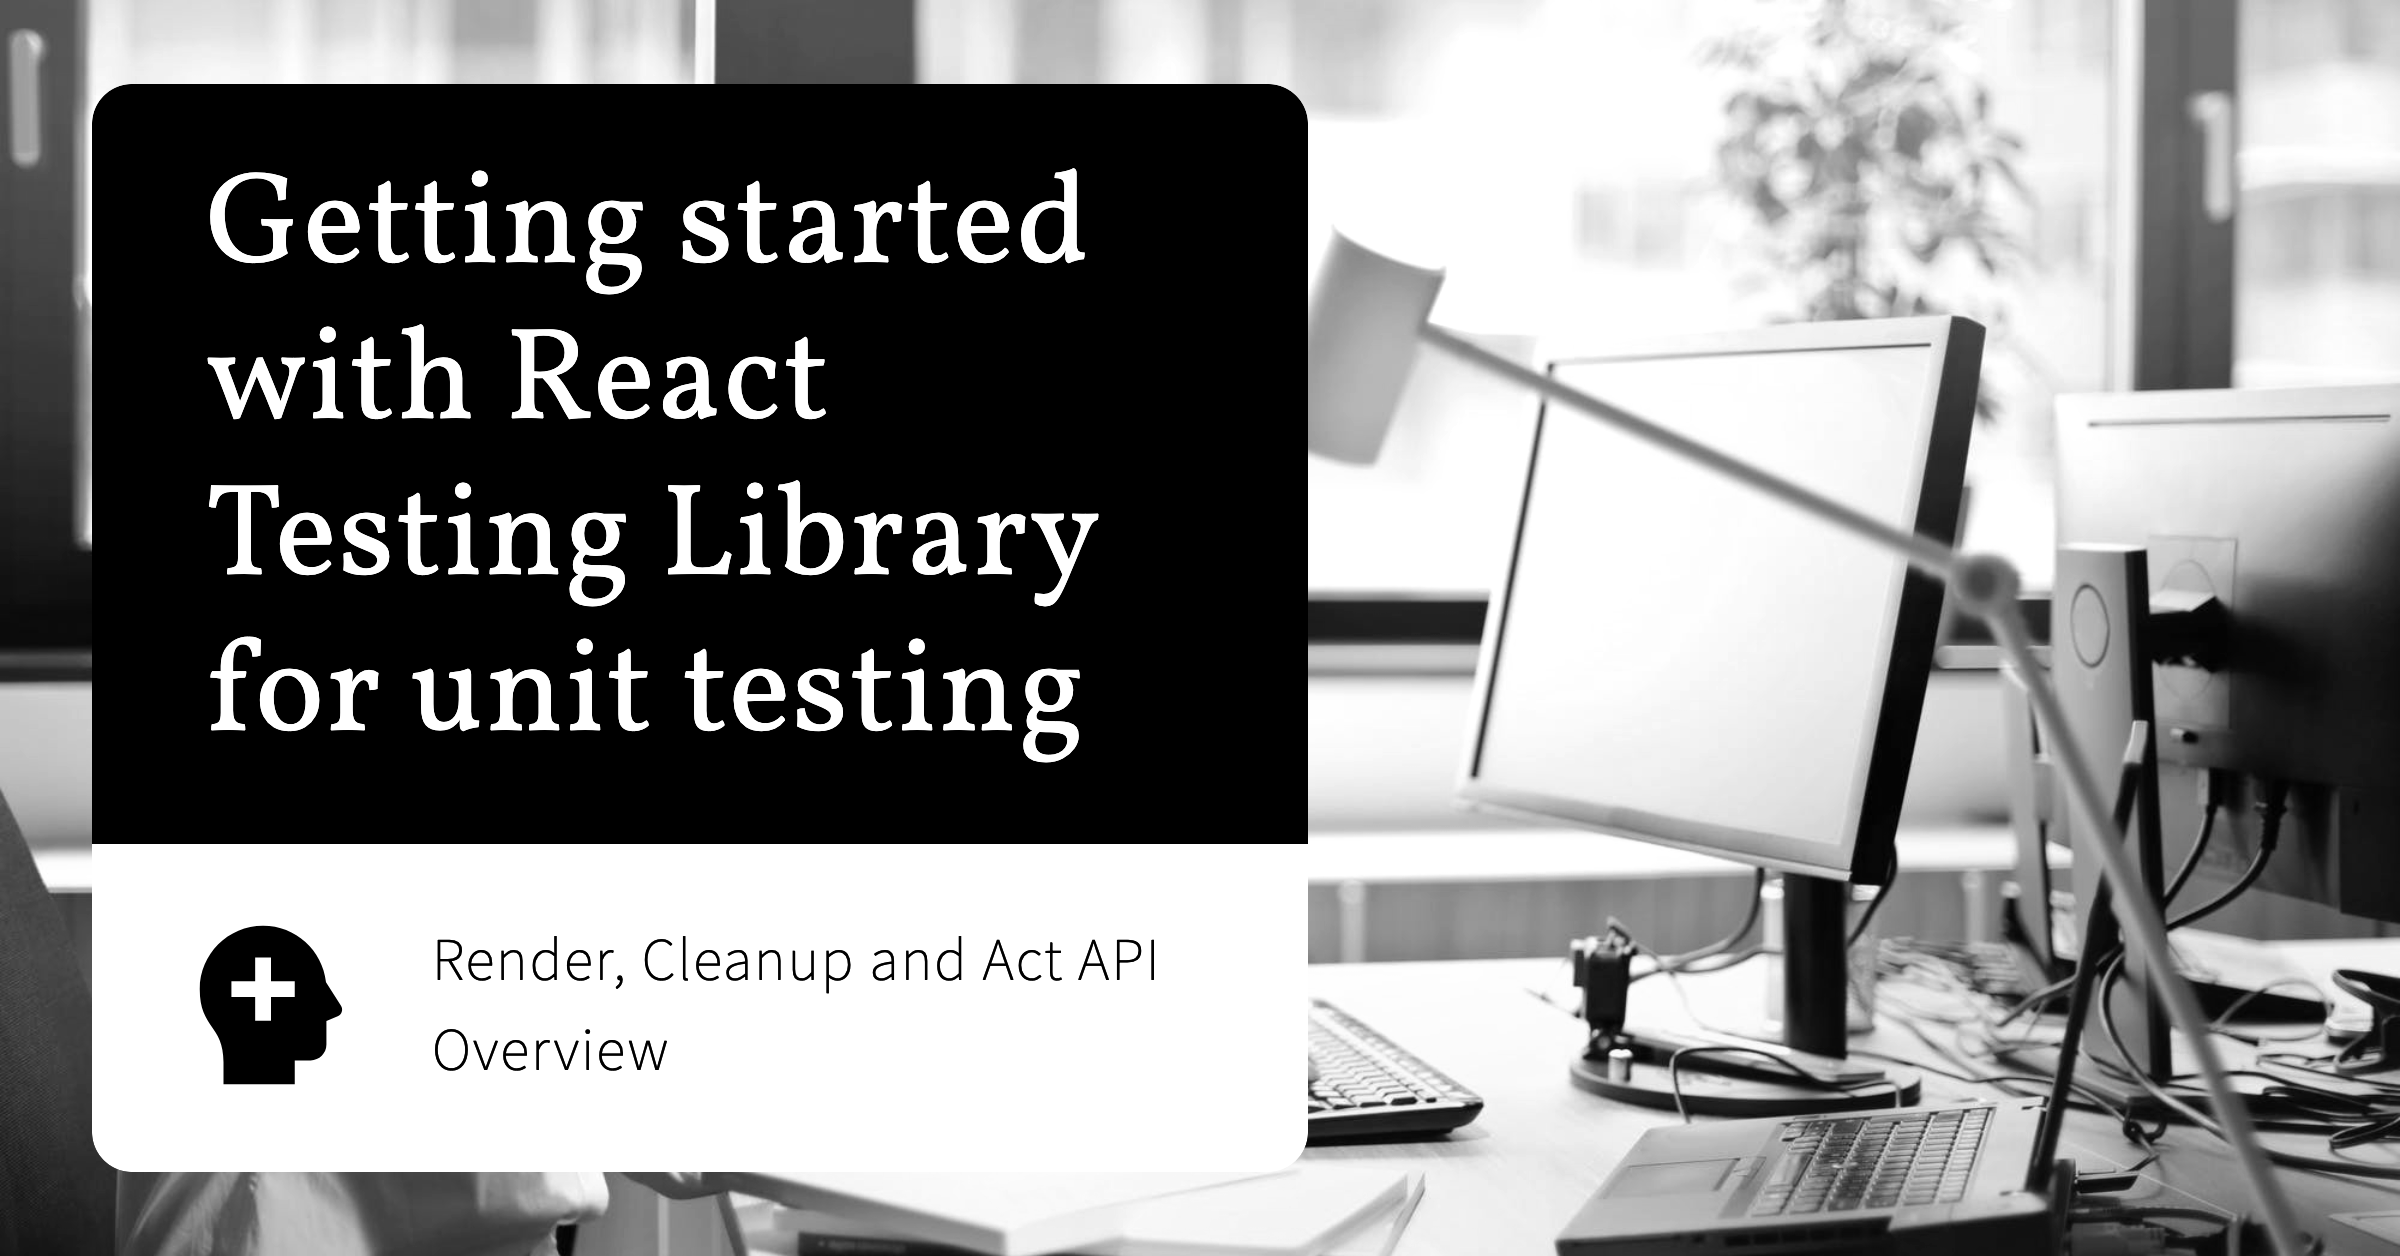 Getting started with React Testing Library for unit testing